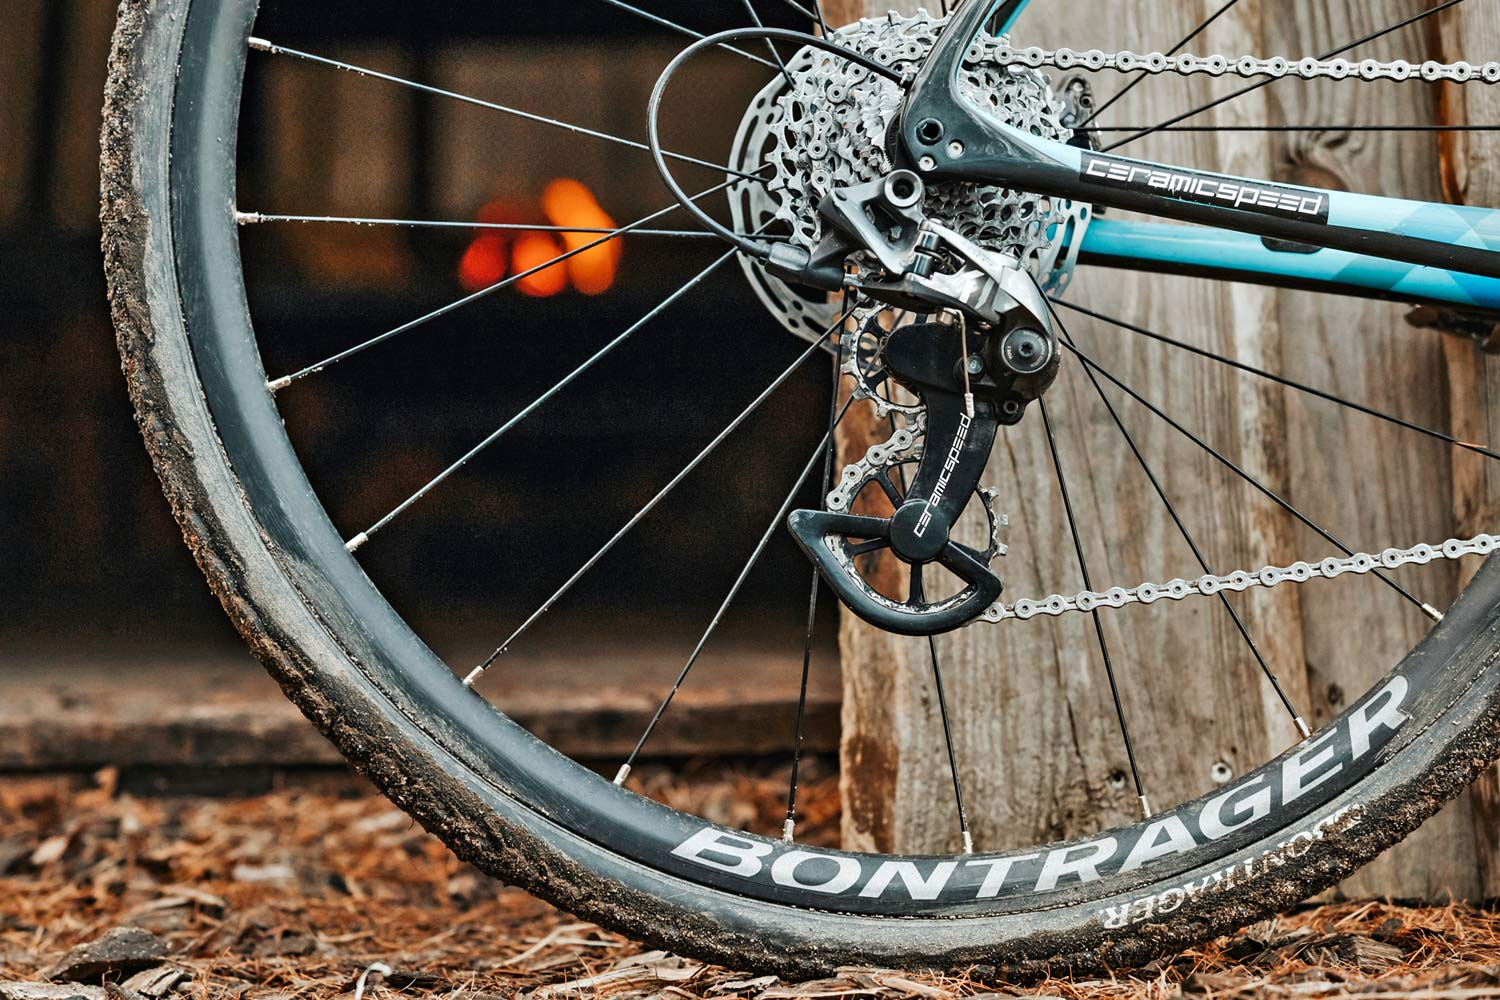 Riding dirty on CeramicSpeed OSPW X off-road w/ massive gravel & CX pulleys